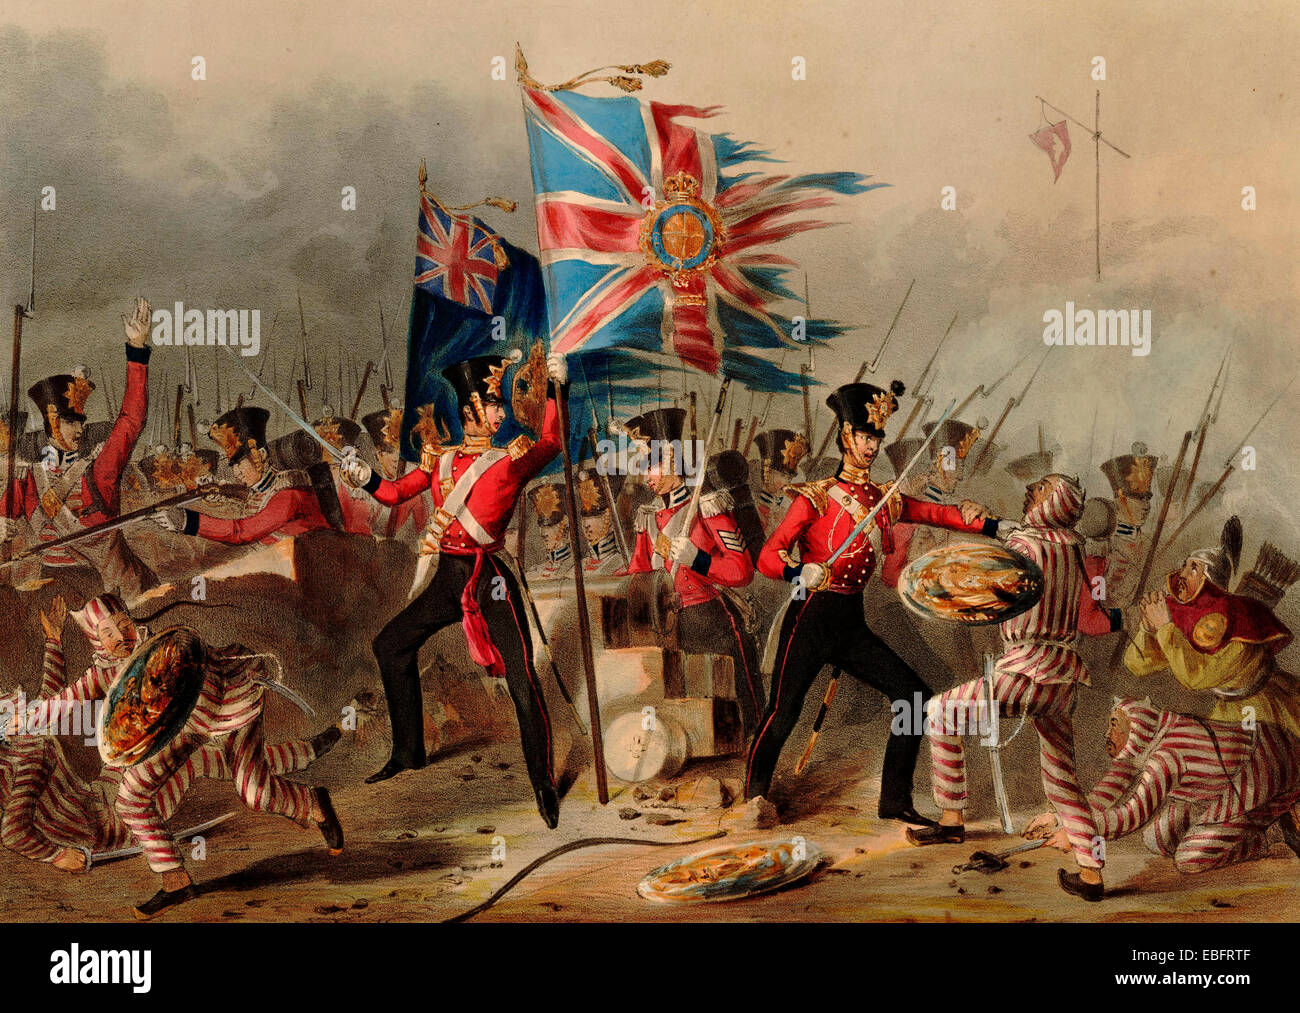 The 18th (Royal Irish) Regiment of Foot at the storming of the forts of Amoy, 26 August 1841 during the First Opium - Stock Image